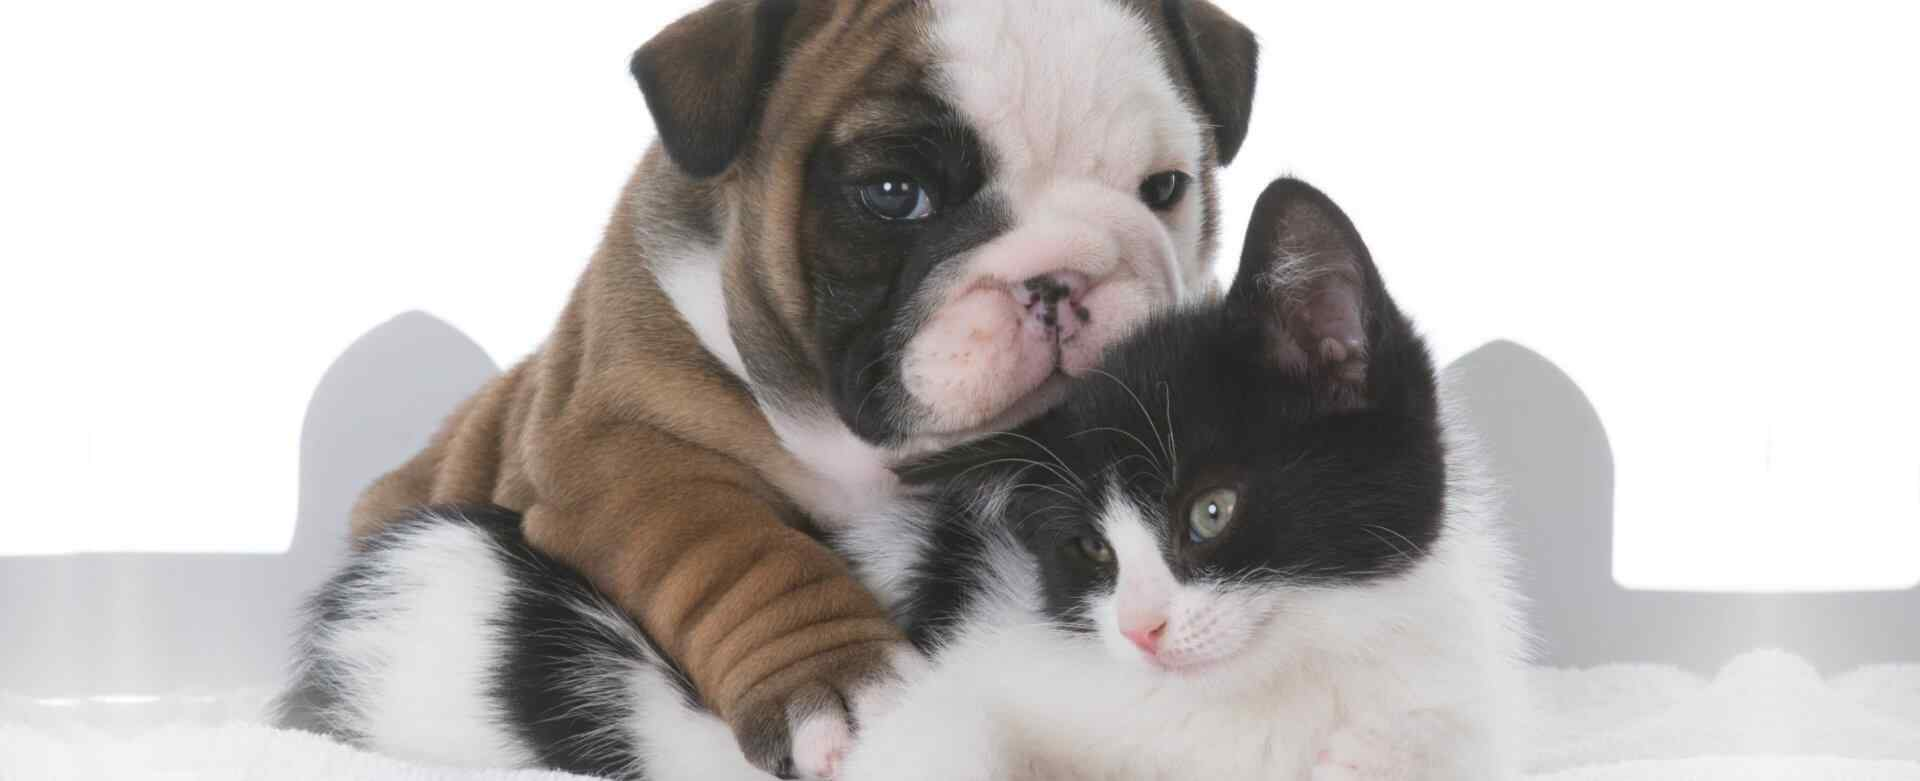 dog hugging cat